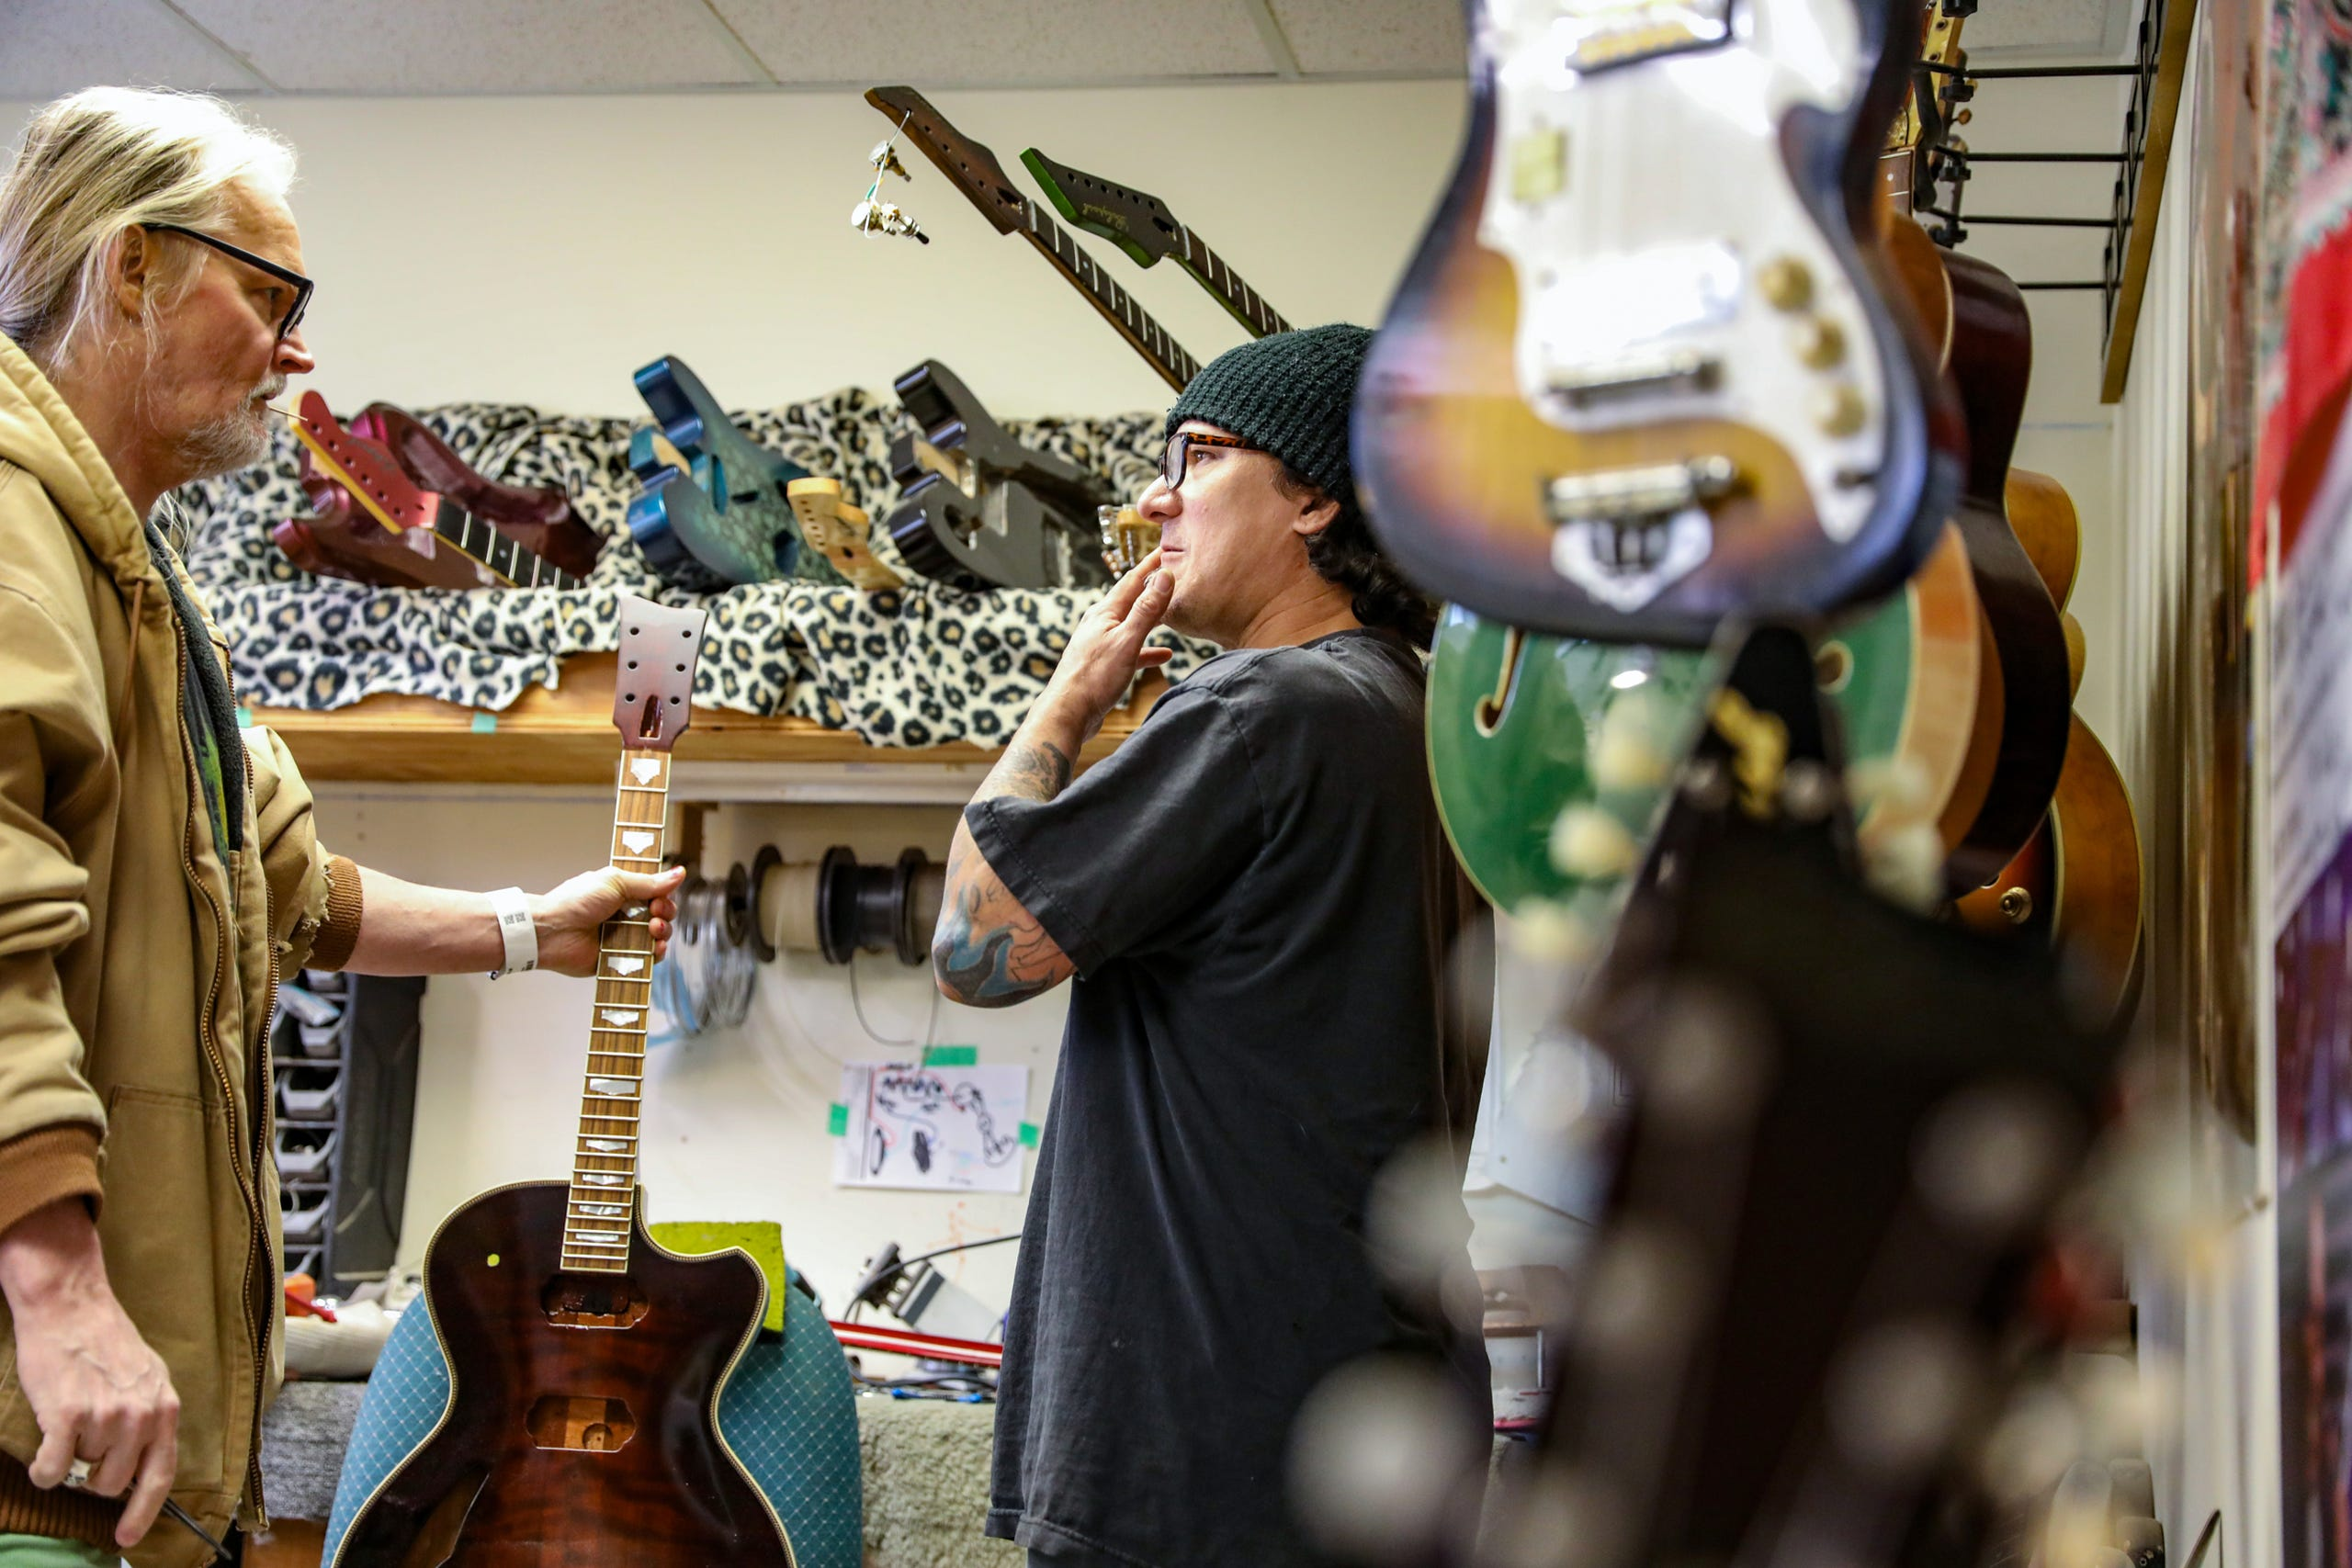 """Gabriel Currie, 52, of Detroit grew up in Los Angeles but moved to Detroit in 2017 with his family to continue making hand-crafted guitars with his company that he founded Echopark Guitars and works in his studio in the Old Redford neighborhood of Detroit on Nov. 12, 2020. Currie recently donated """"The Salt of Detroit"""" guitar that he made from 100-year-old trees submerged in Lake Michigan to Ann Delisi of WDET radio. The electric guitar will be raffled off and features drawings of famous guitarists created by Detroit artist Sabrina Nelson."""